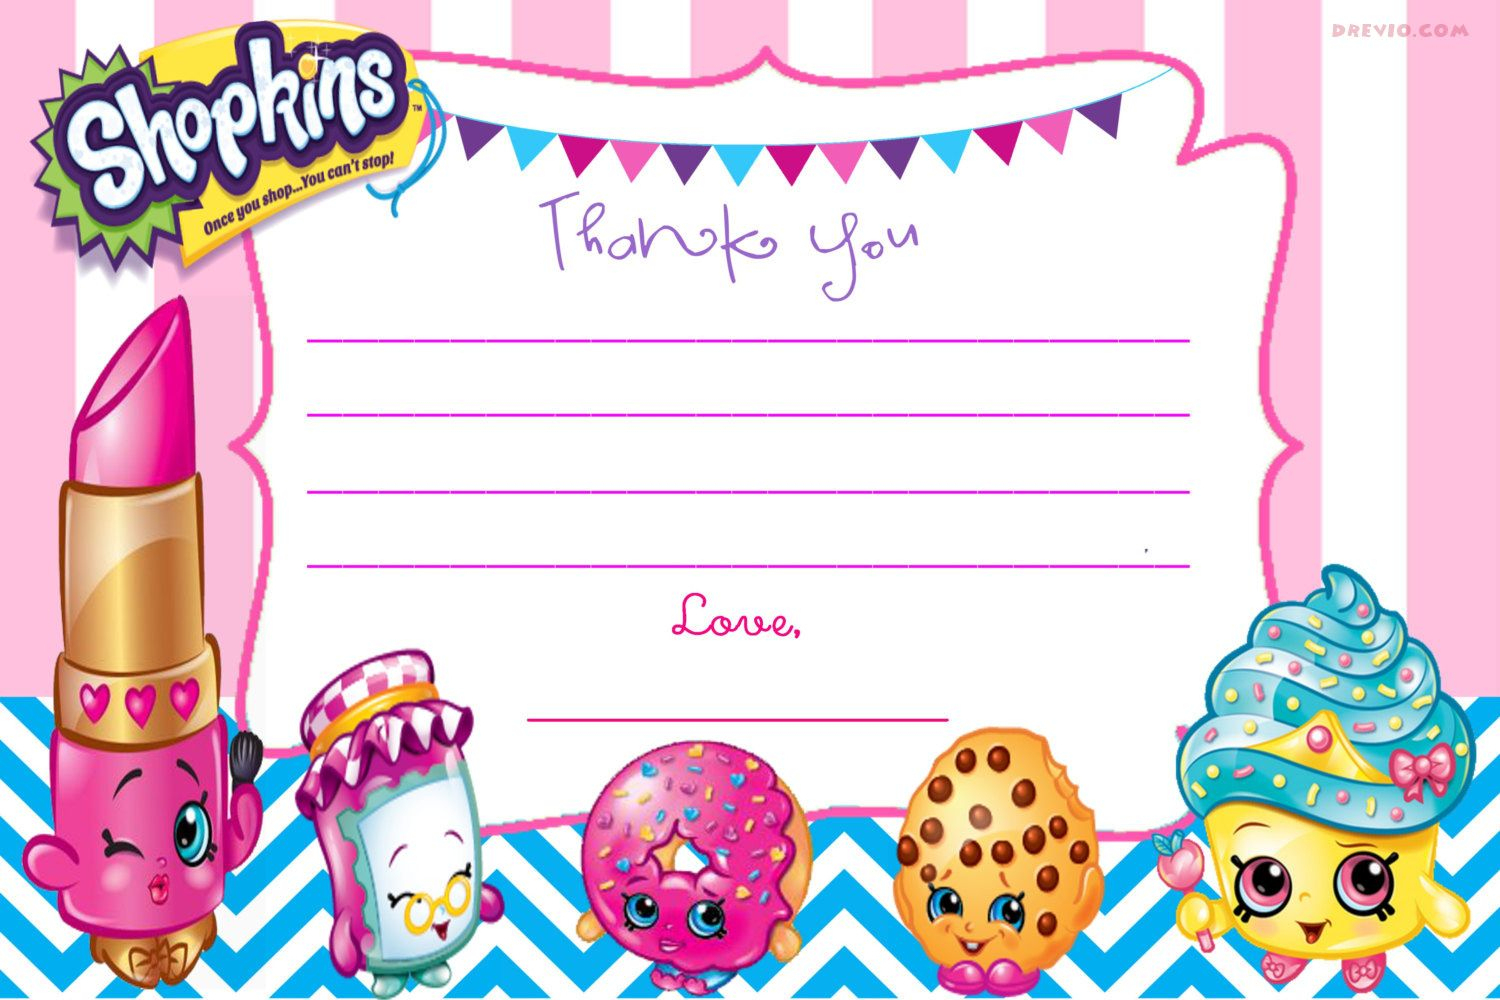 Updated - Free Printable Shopkins Birthday Invitation | Free - Free Printable Shopkins Invitations